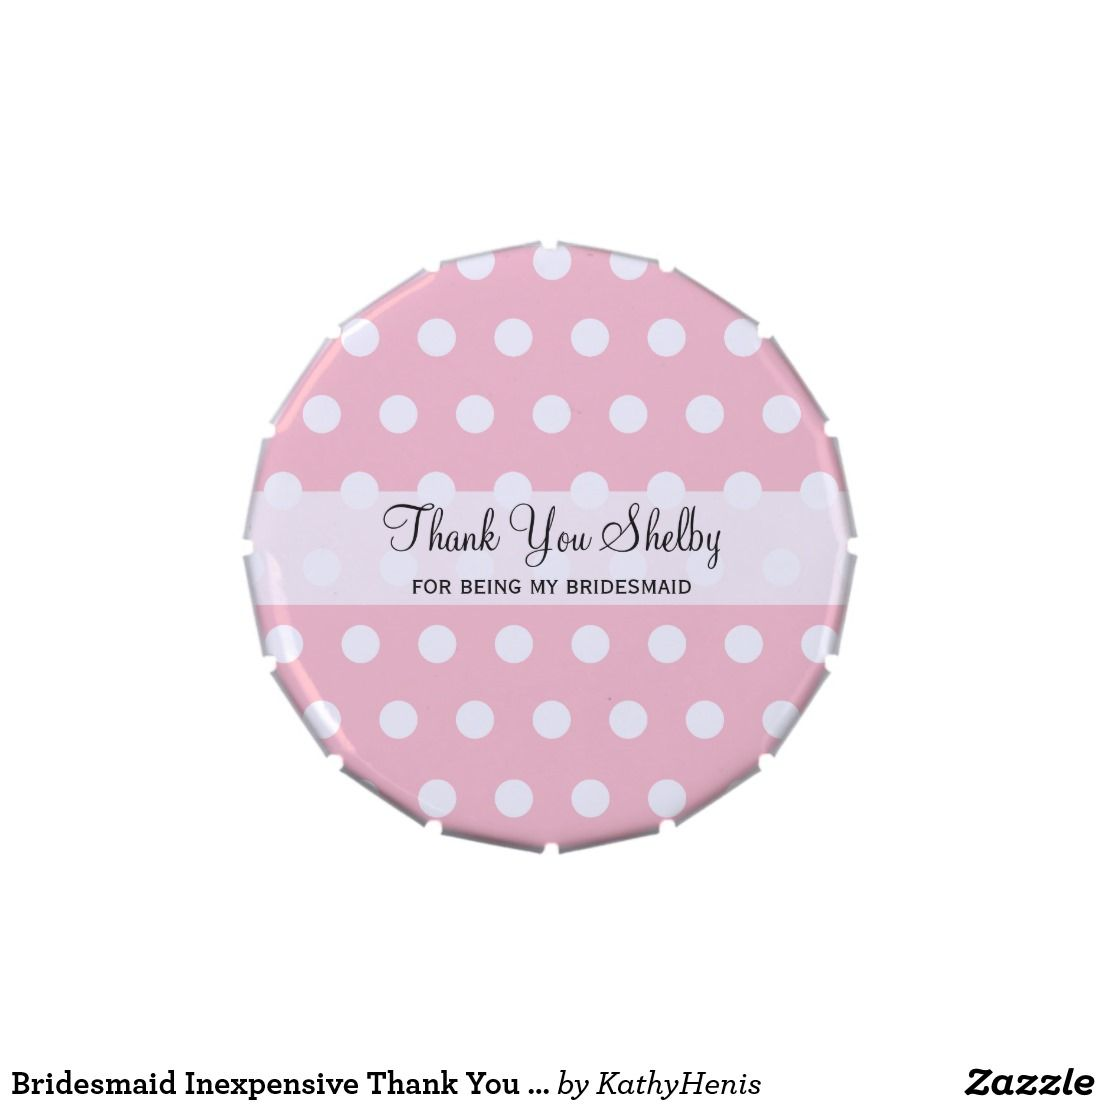 Bridesmaid Inexpensive Thank You Gifts Candy Tin | Candy Containers ...